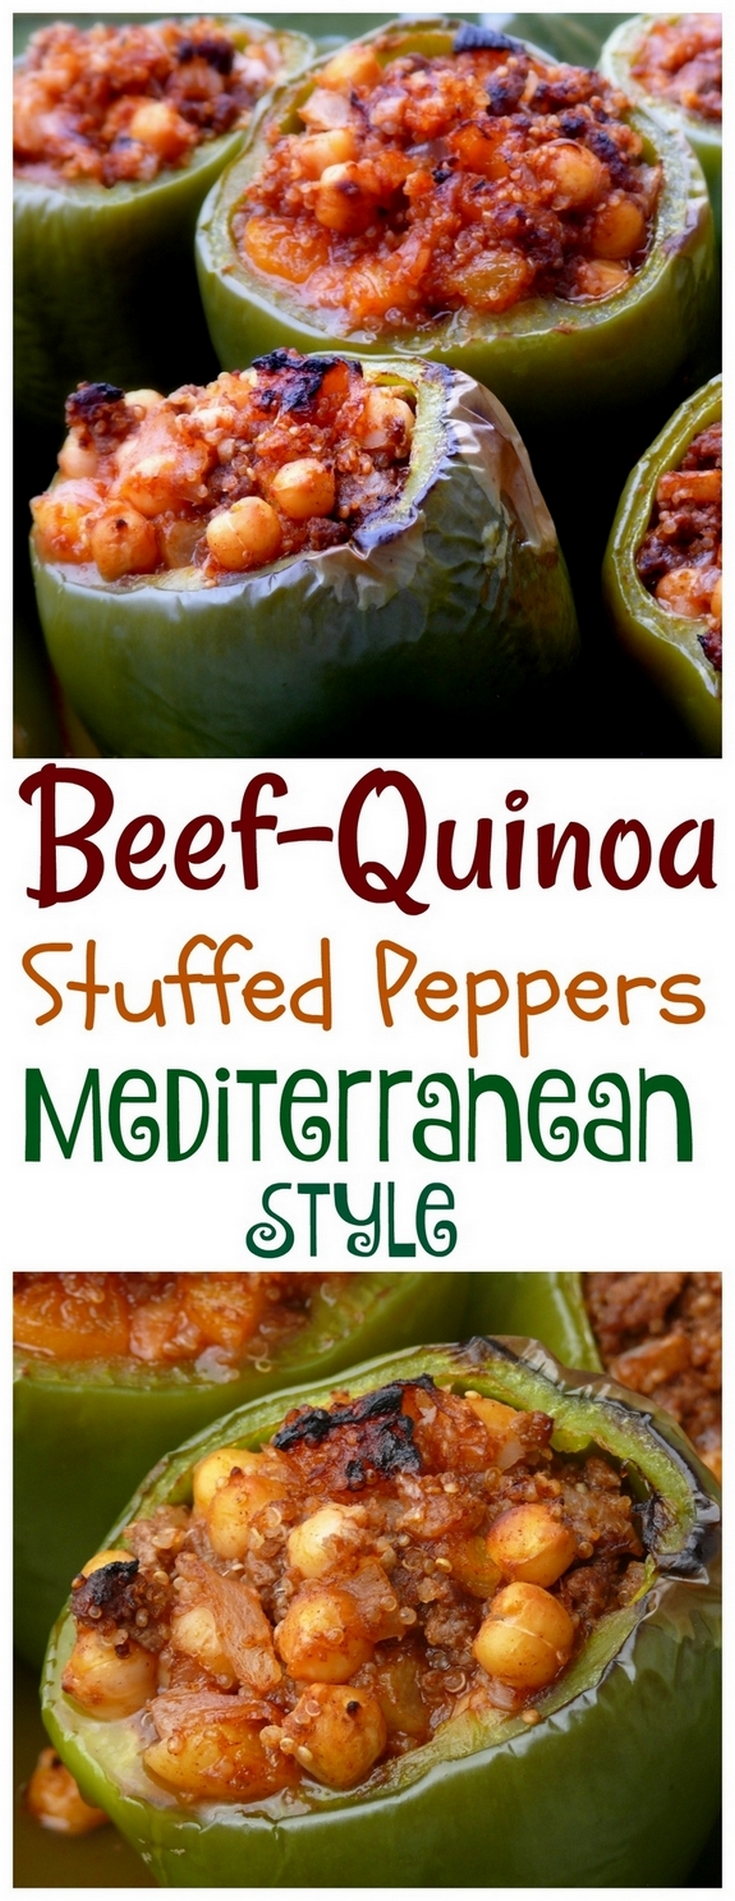 VIDEO + RECIPE: Stuffed to the brim with Mediterranean flavors, these Beef-Quinoa Stuffed Peppers bring a new twist to the dinner table. They make great leftovers too from NoblePig.com. via @cmpollak1